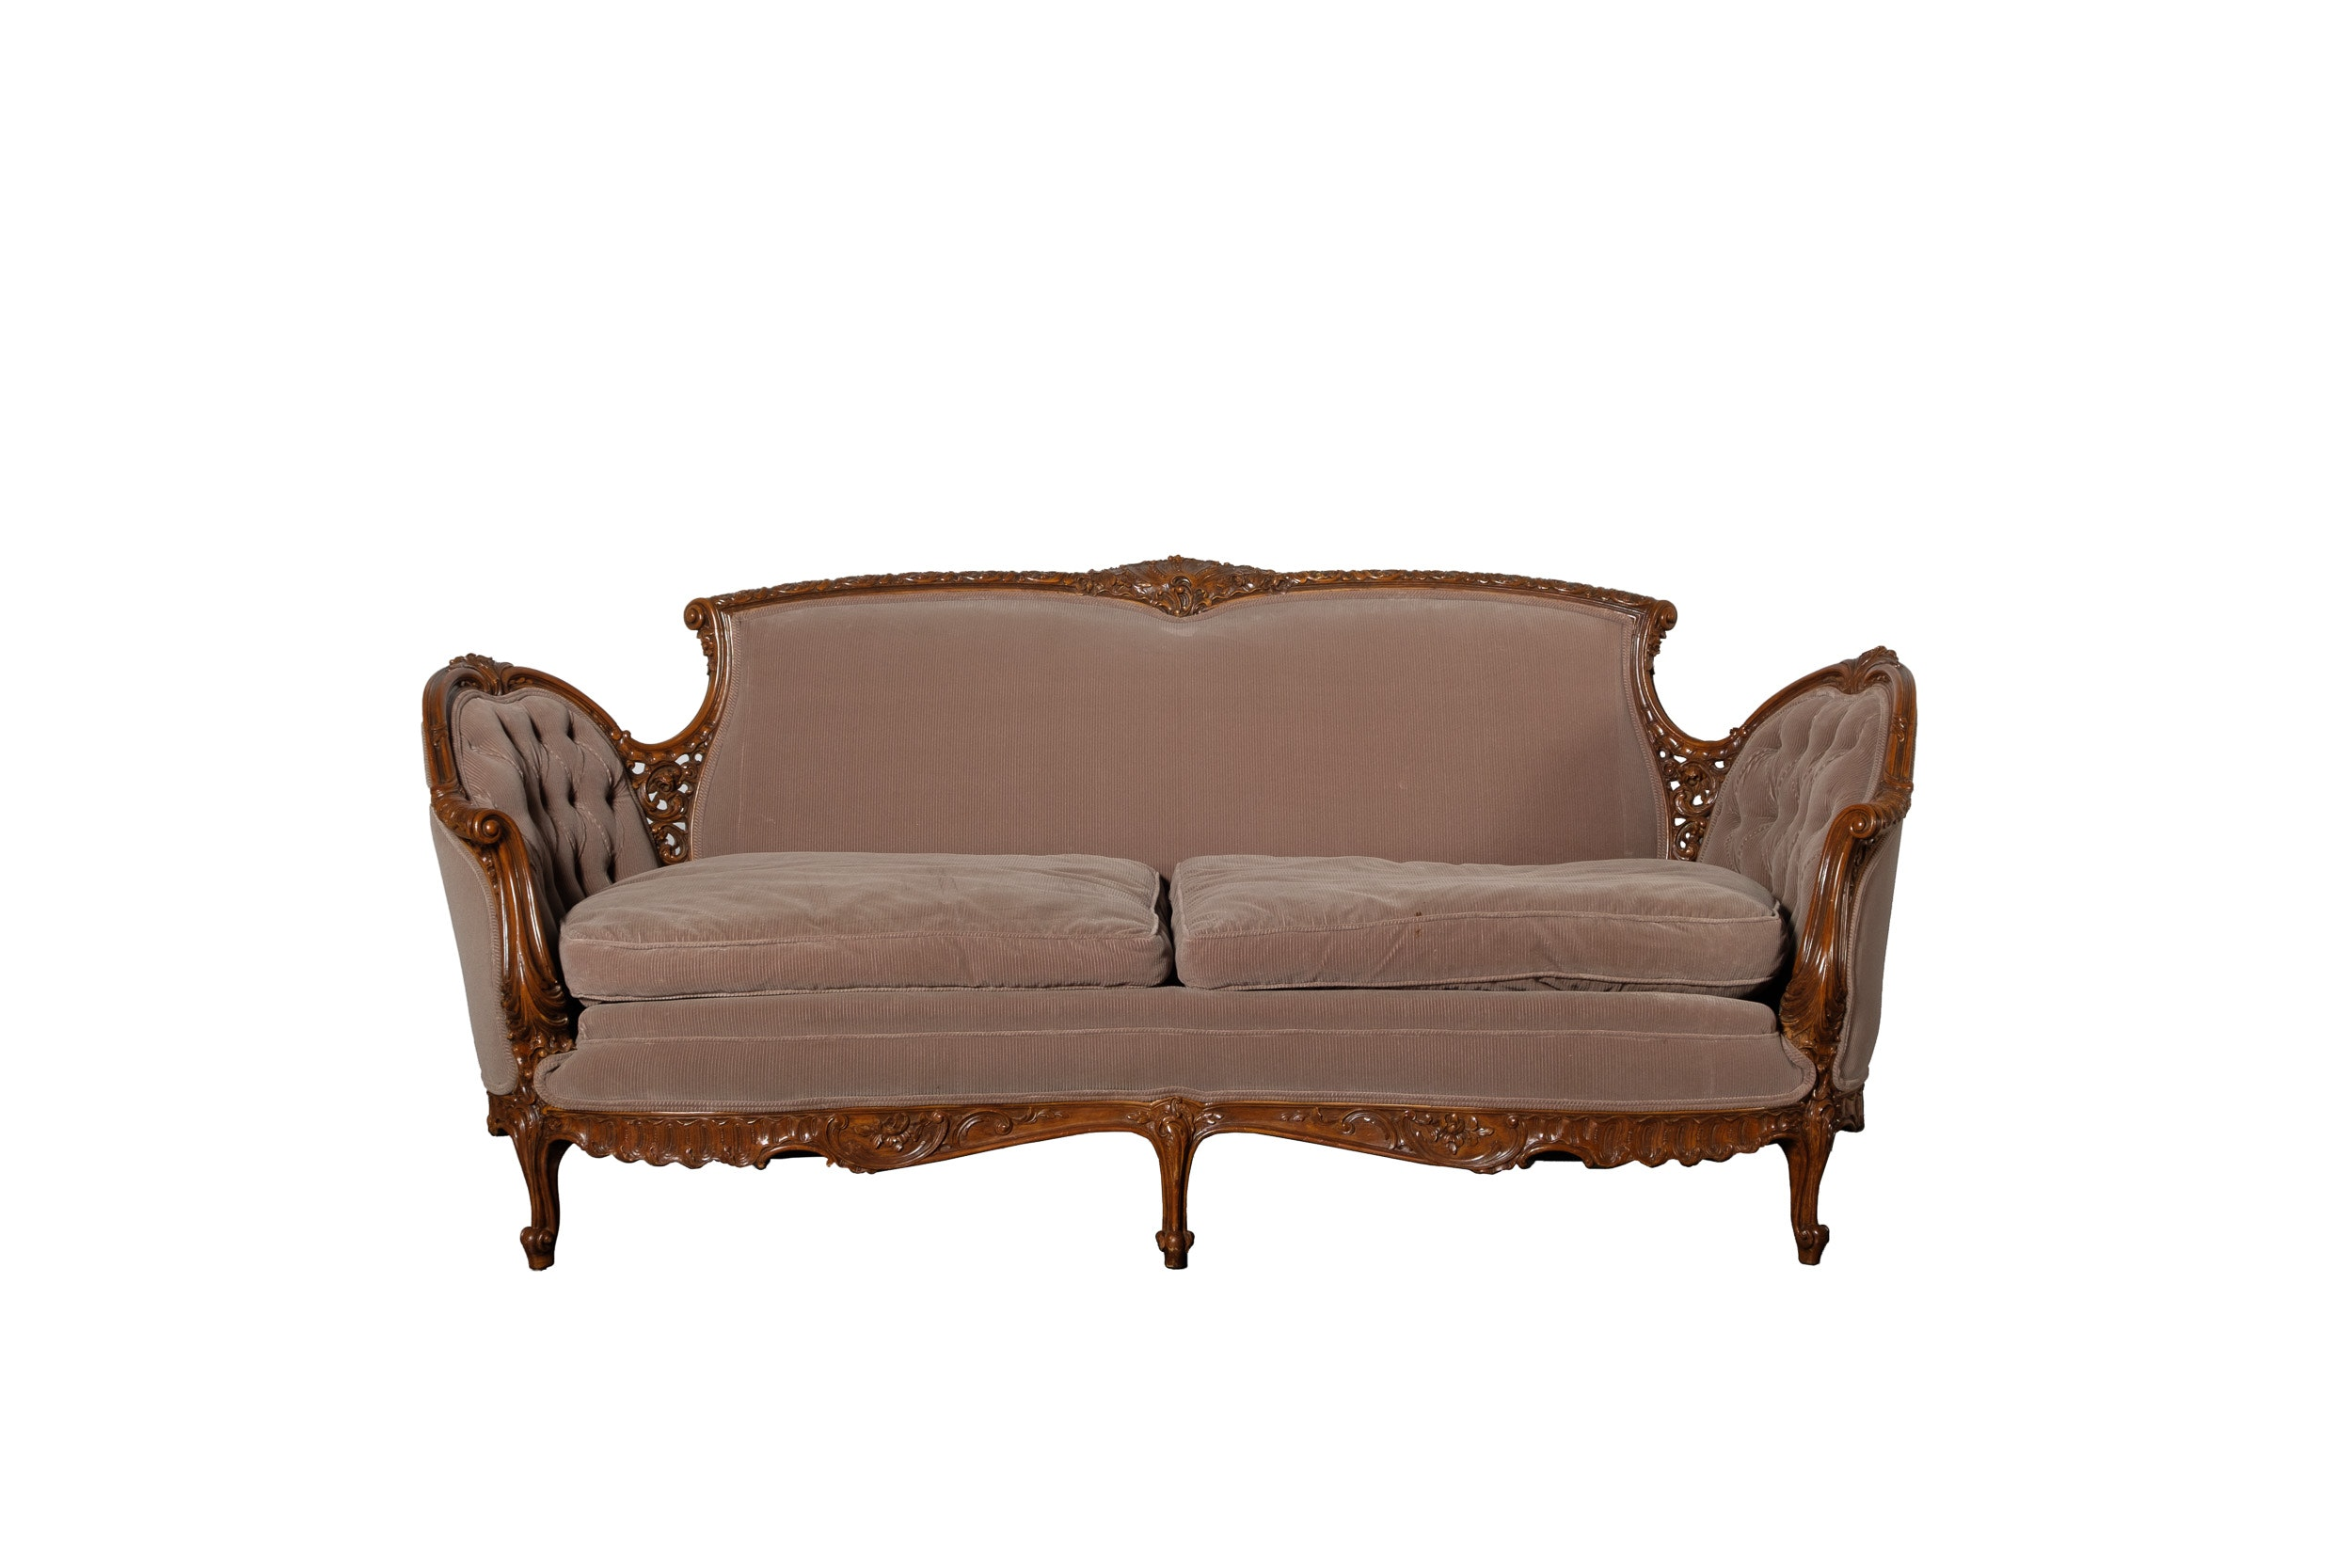 Vintage Louis XV Style Upholstered Settee